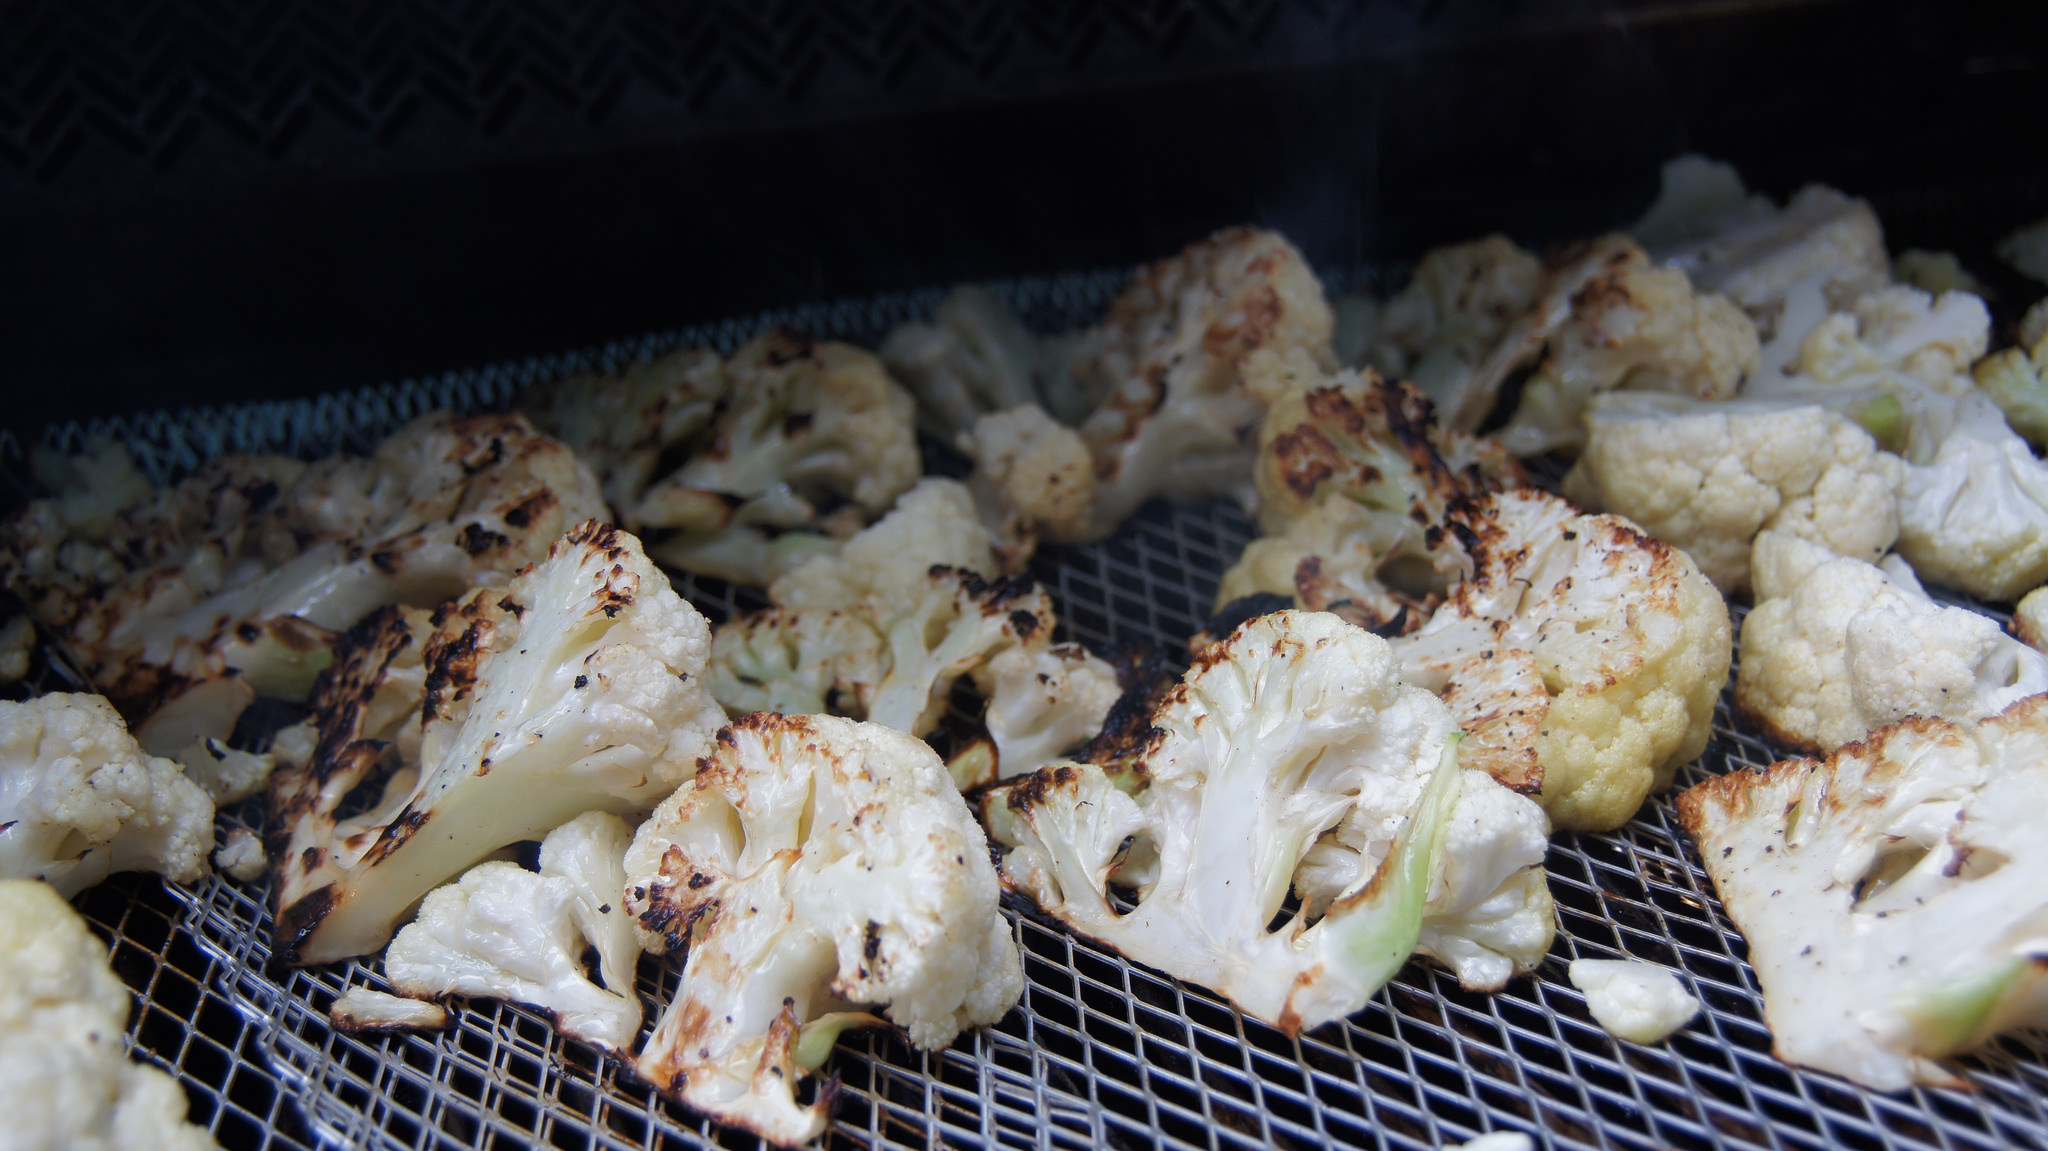 Charred Cauliflower Steaks on the Grill